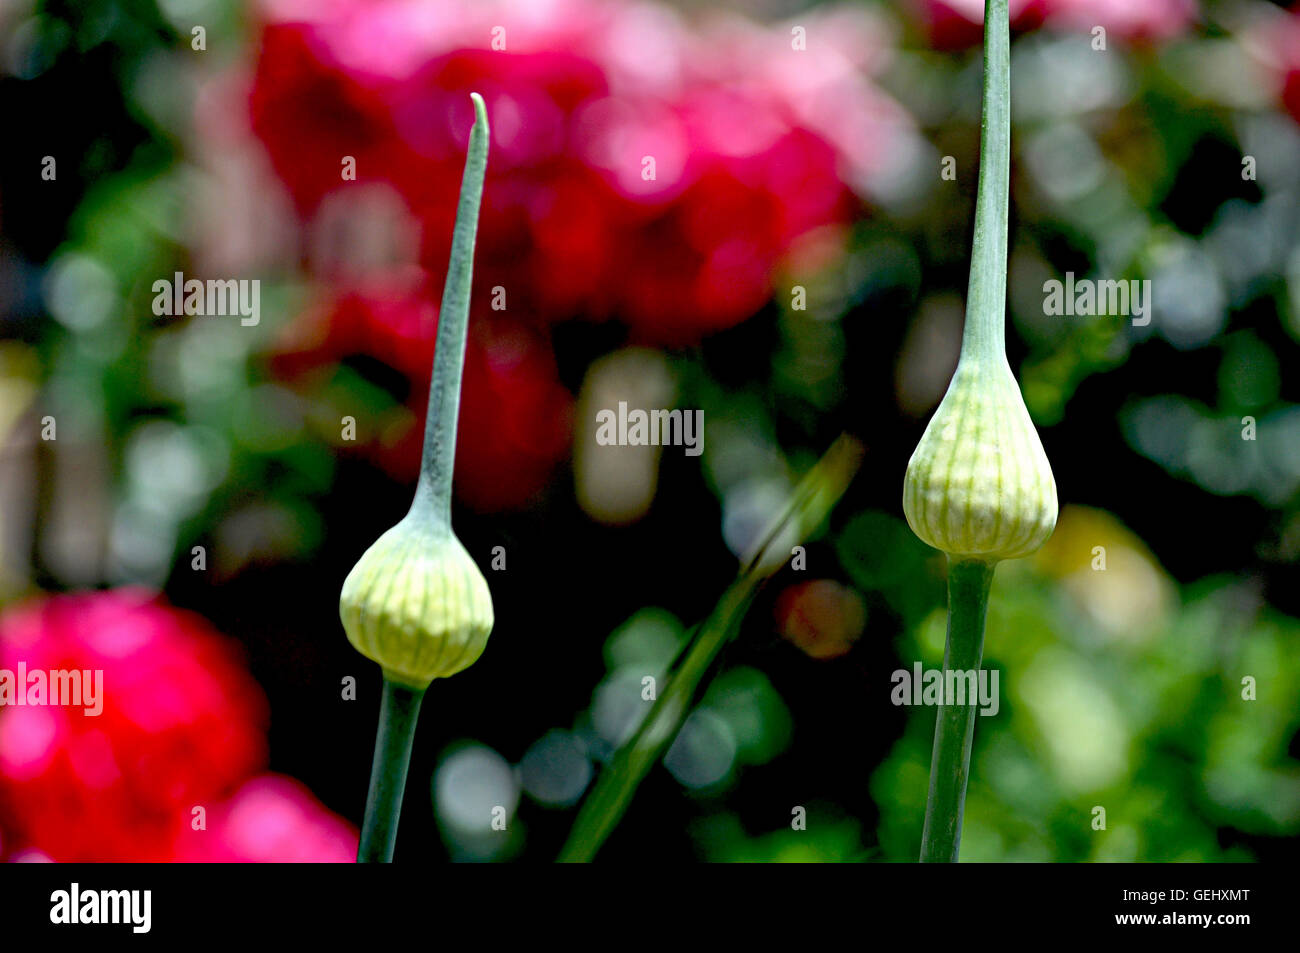 two onion cupolas with seeds - Stock Image